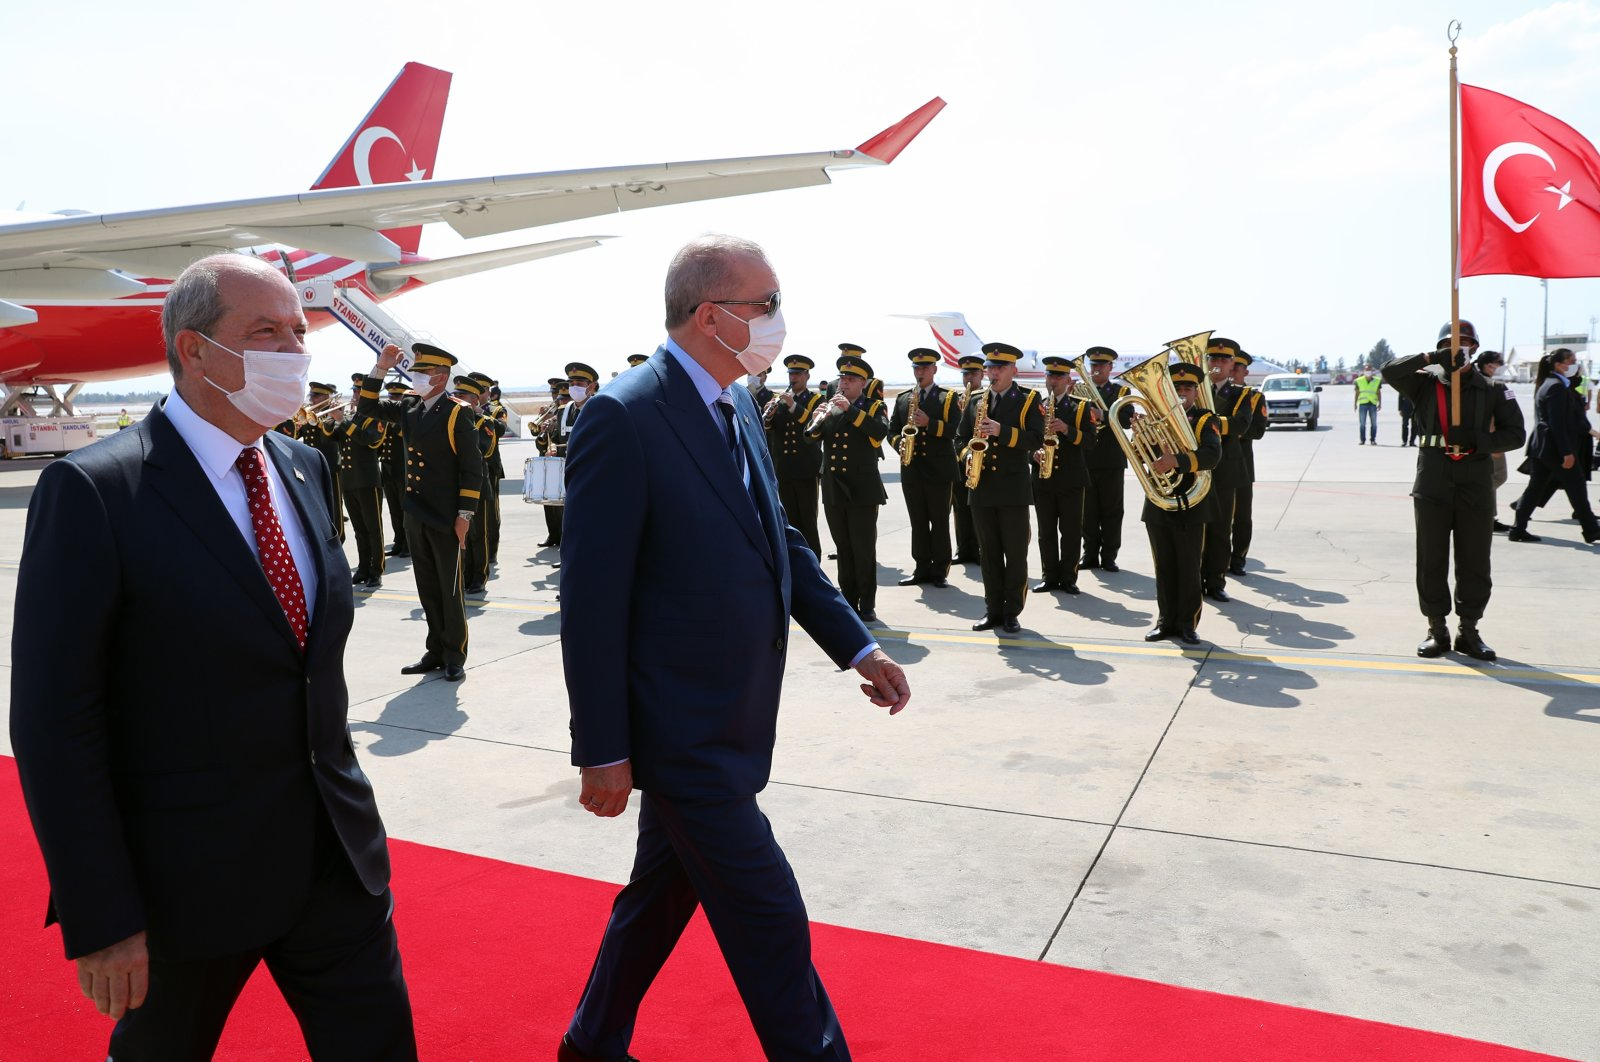 Turkish President Recep Tayyip Erdoğan reviews a guard of honor with Turkish Cypriot leader Ersin Tatar as he arrives to the Turkish Republic of Northern Cyprus (TRNC), in northern Nicosia, Cyprus, July 19, 2021. (AA Photo)